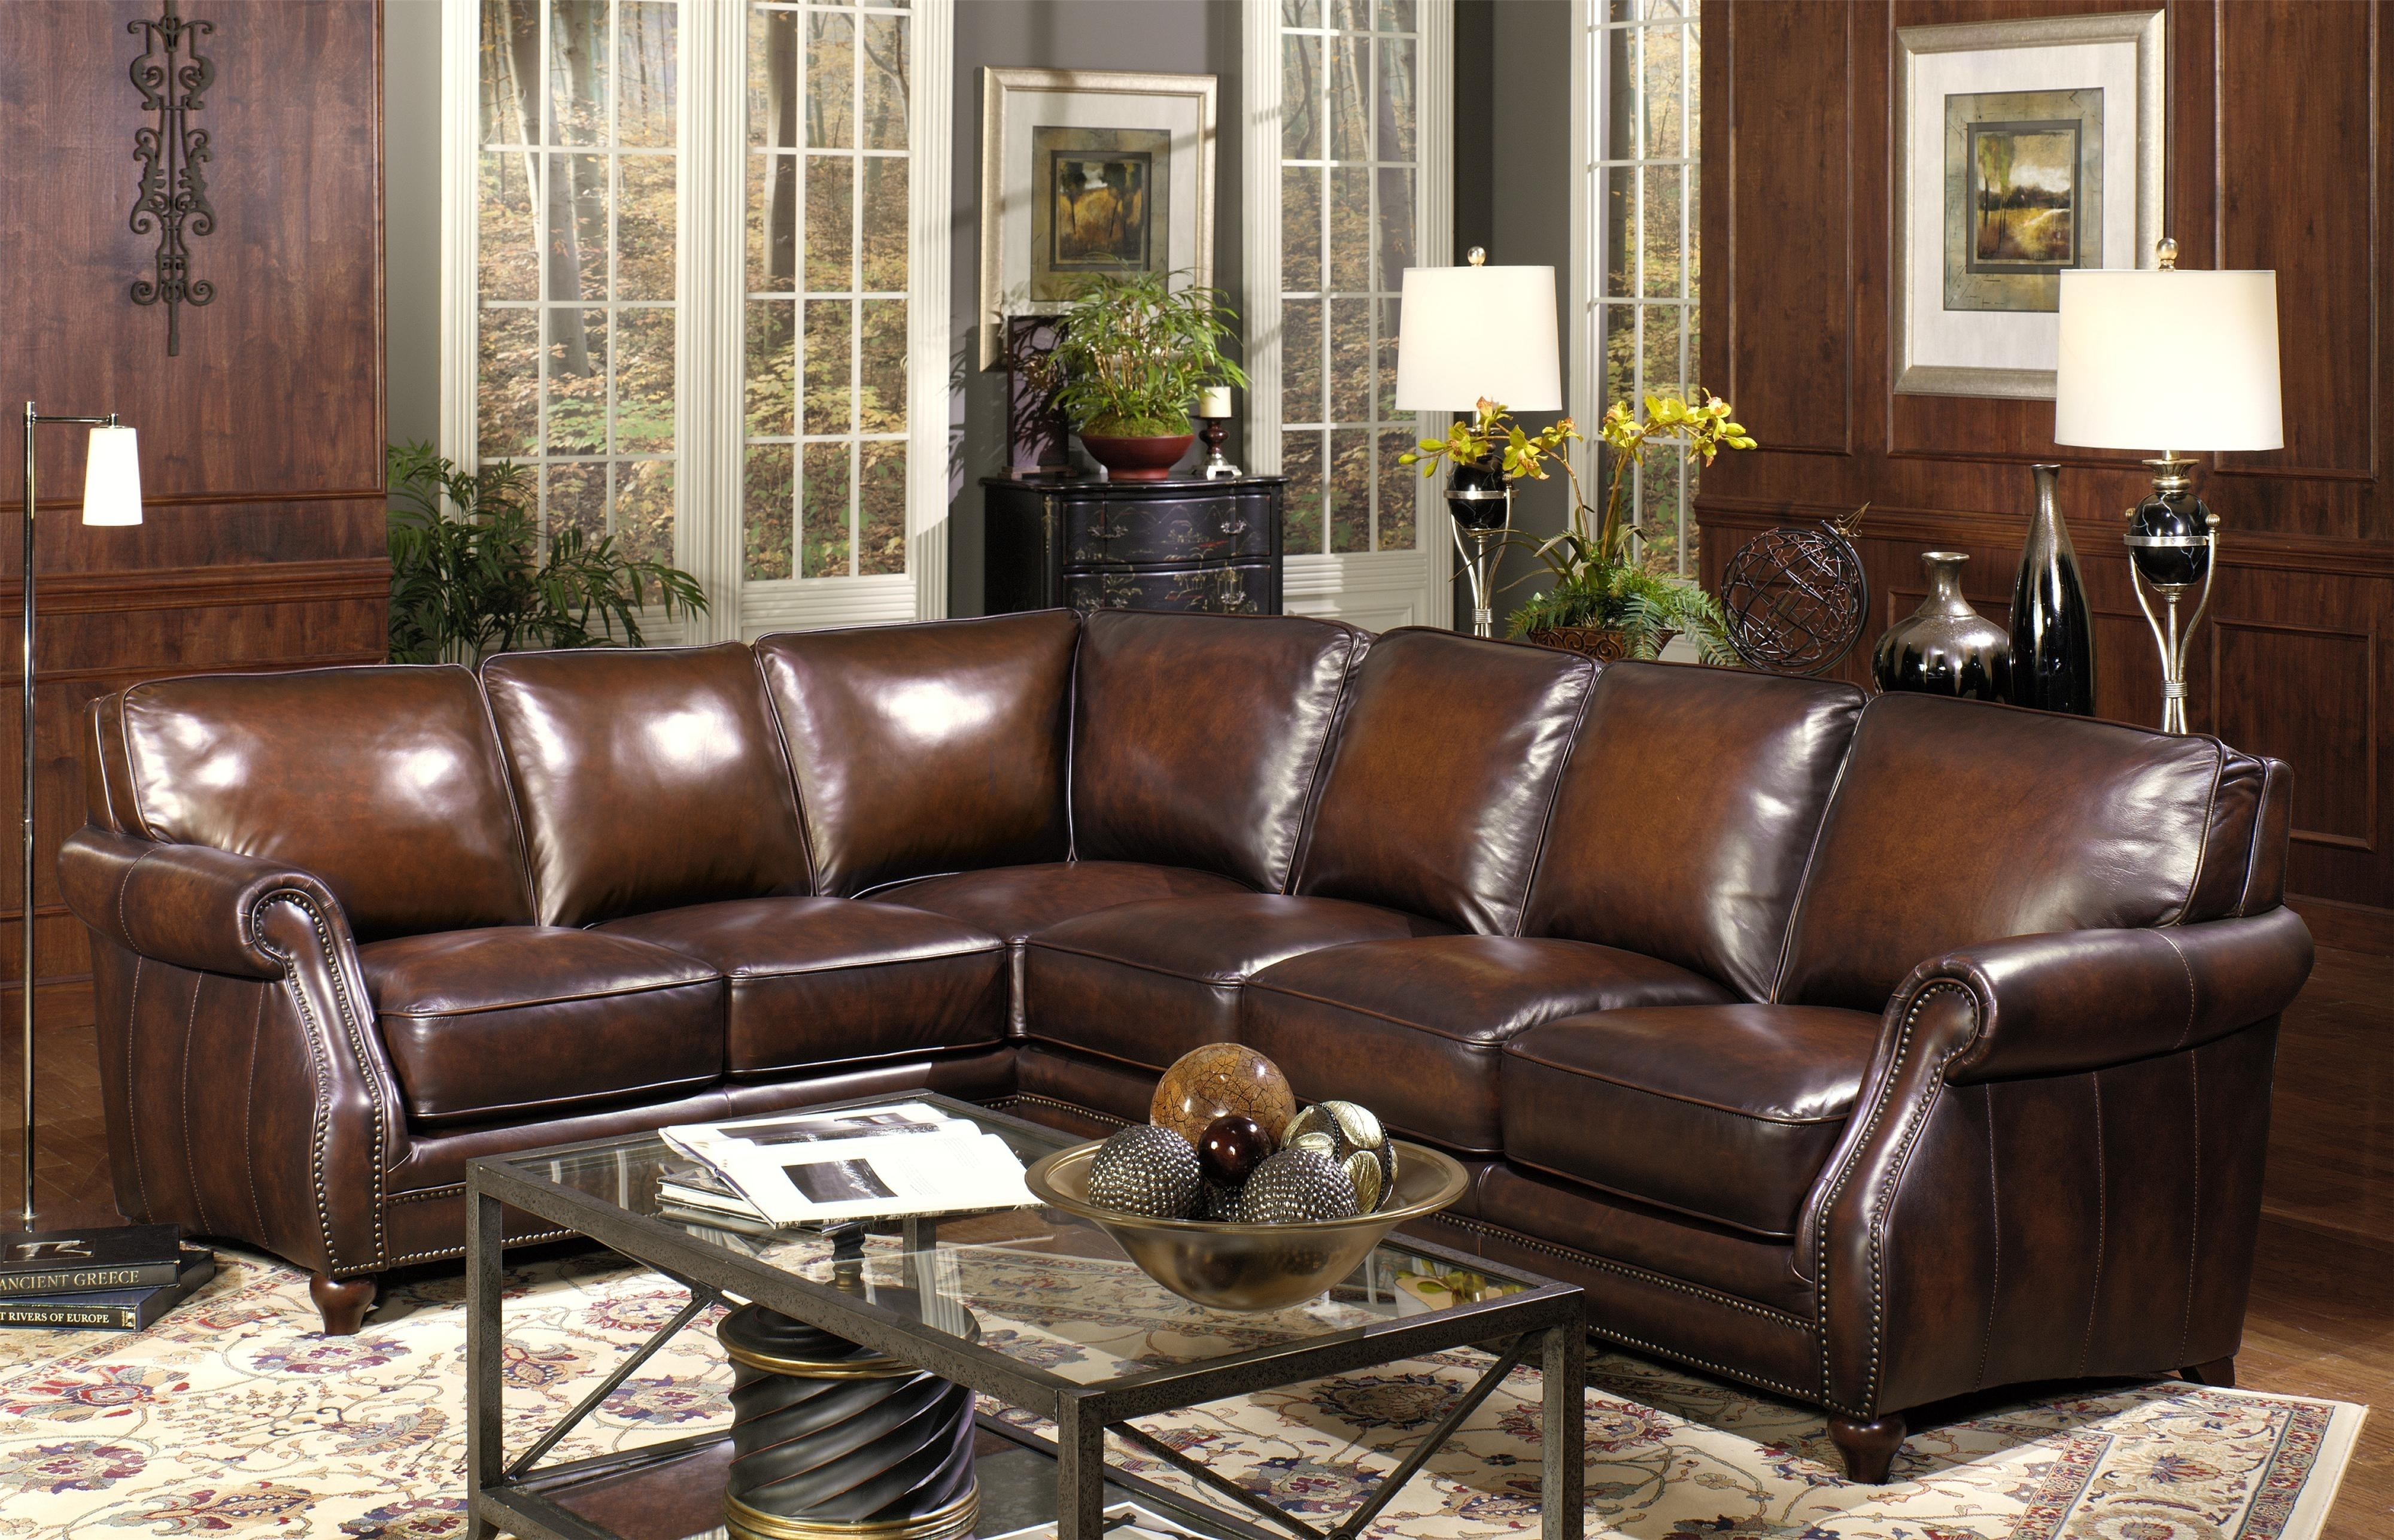 Sam's Club Furniture Living Room Set Sam's Club Furniture Living Within Sams Club Sectional Sofas (View 7 of 10)